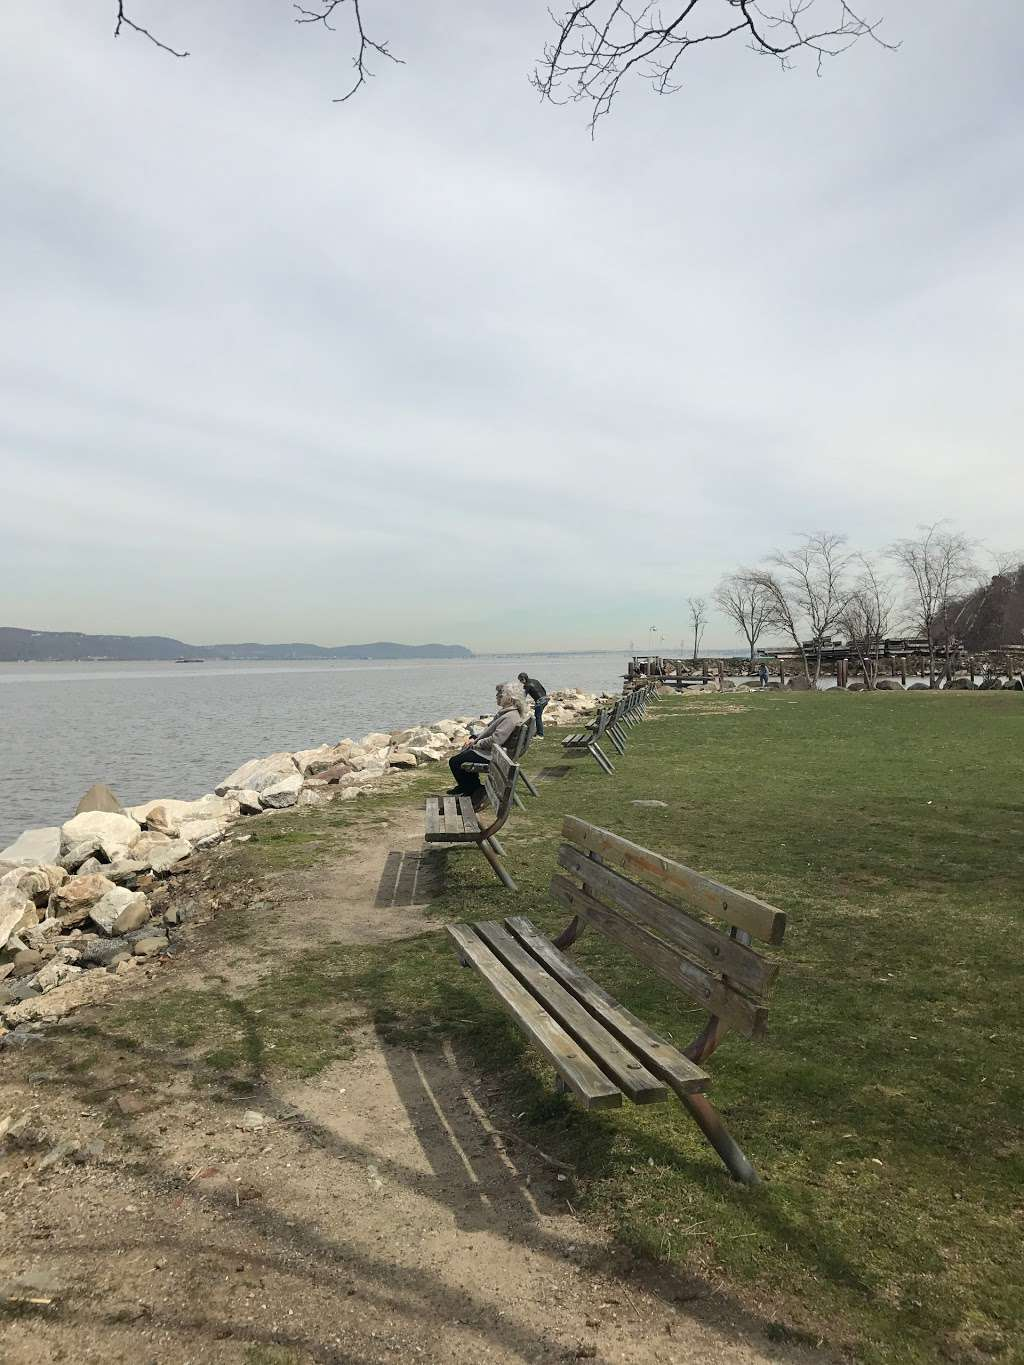 MacEachron Waterfront Park - park  | Photo 8 of 10 | Address: 100 River St, Hastings-On-Hudson, NY 10706, USA